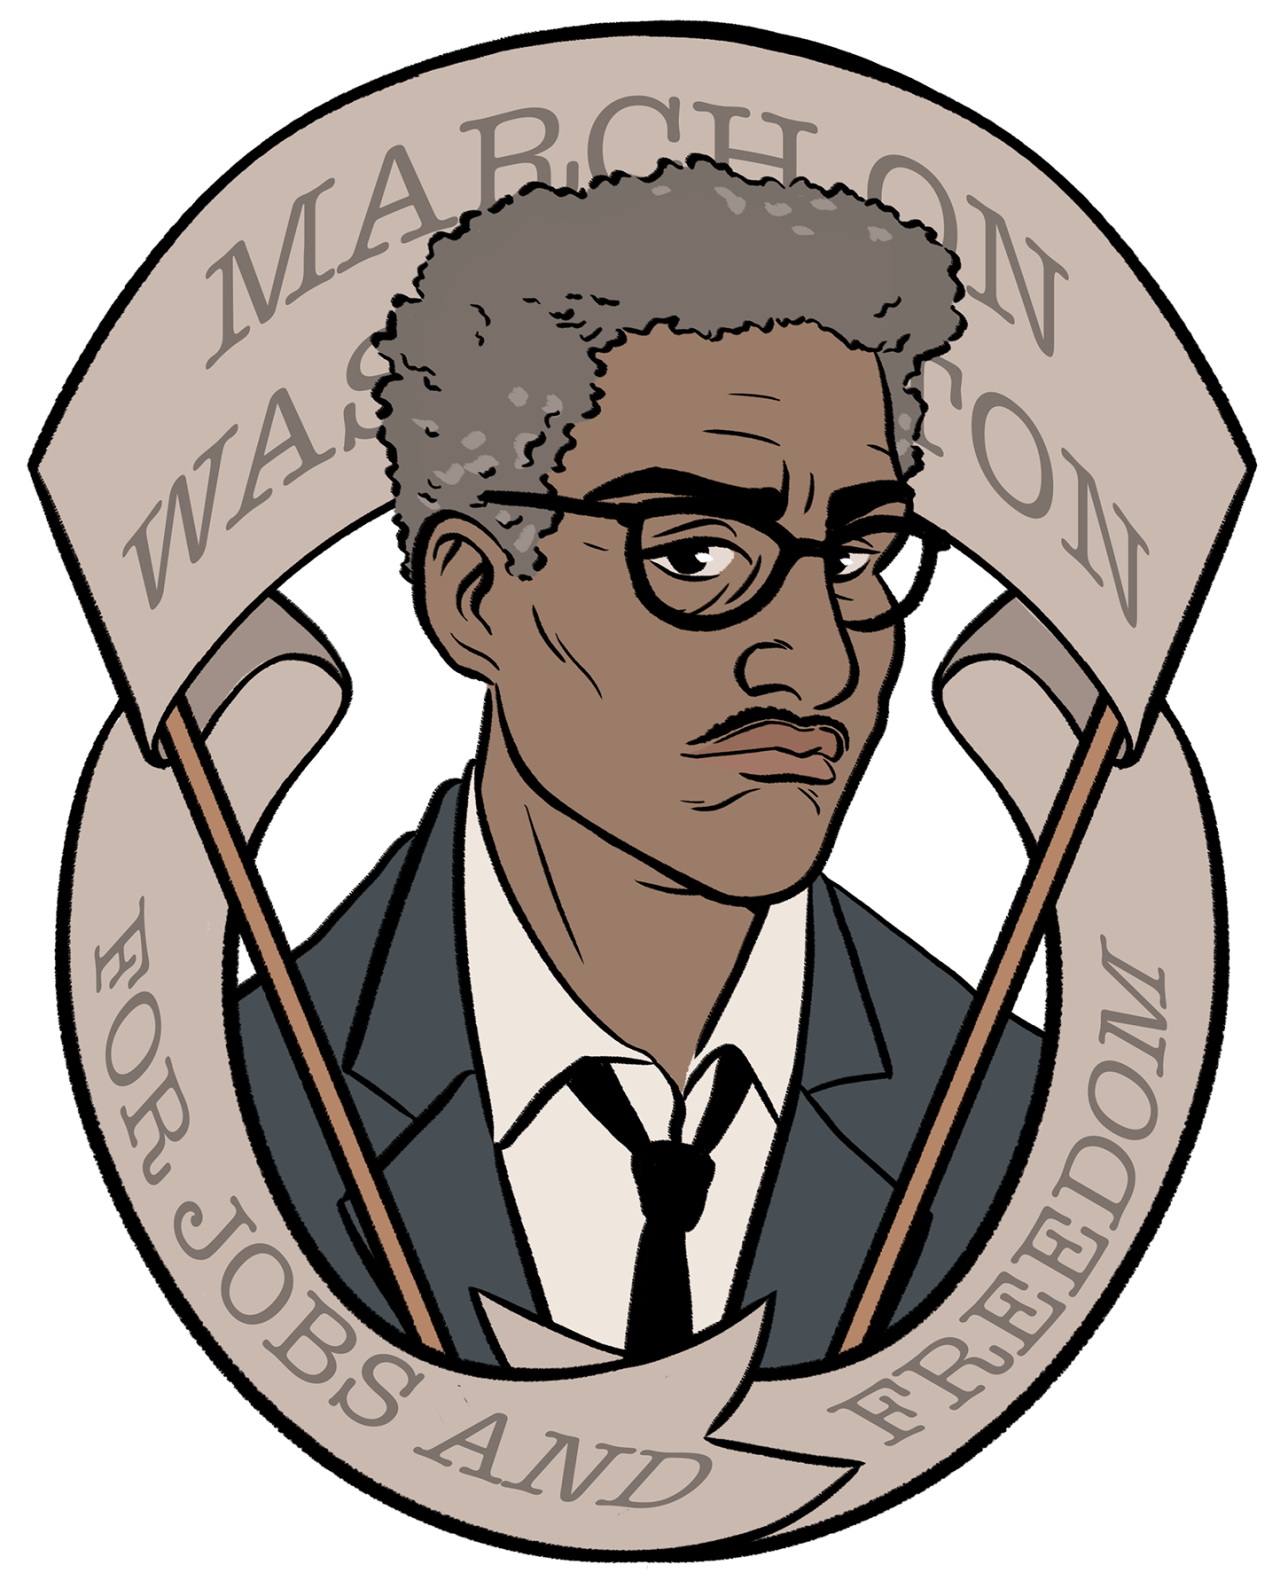 graphic transparent download Queer history podcast episode. Martin luther jr clipart civil rights movement.